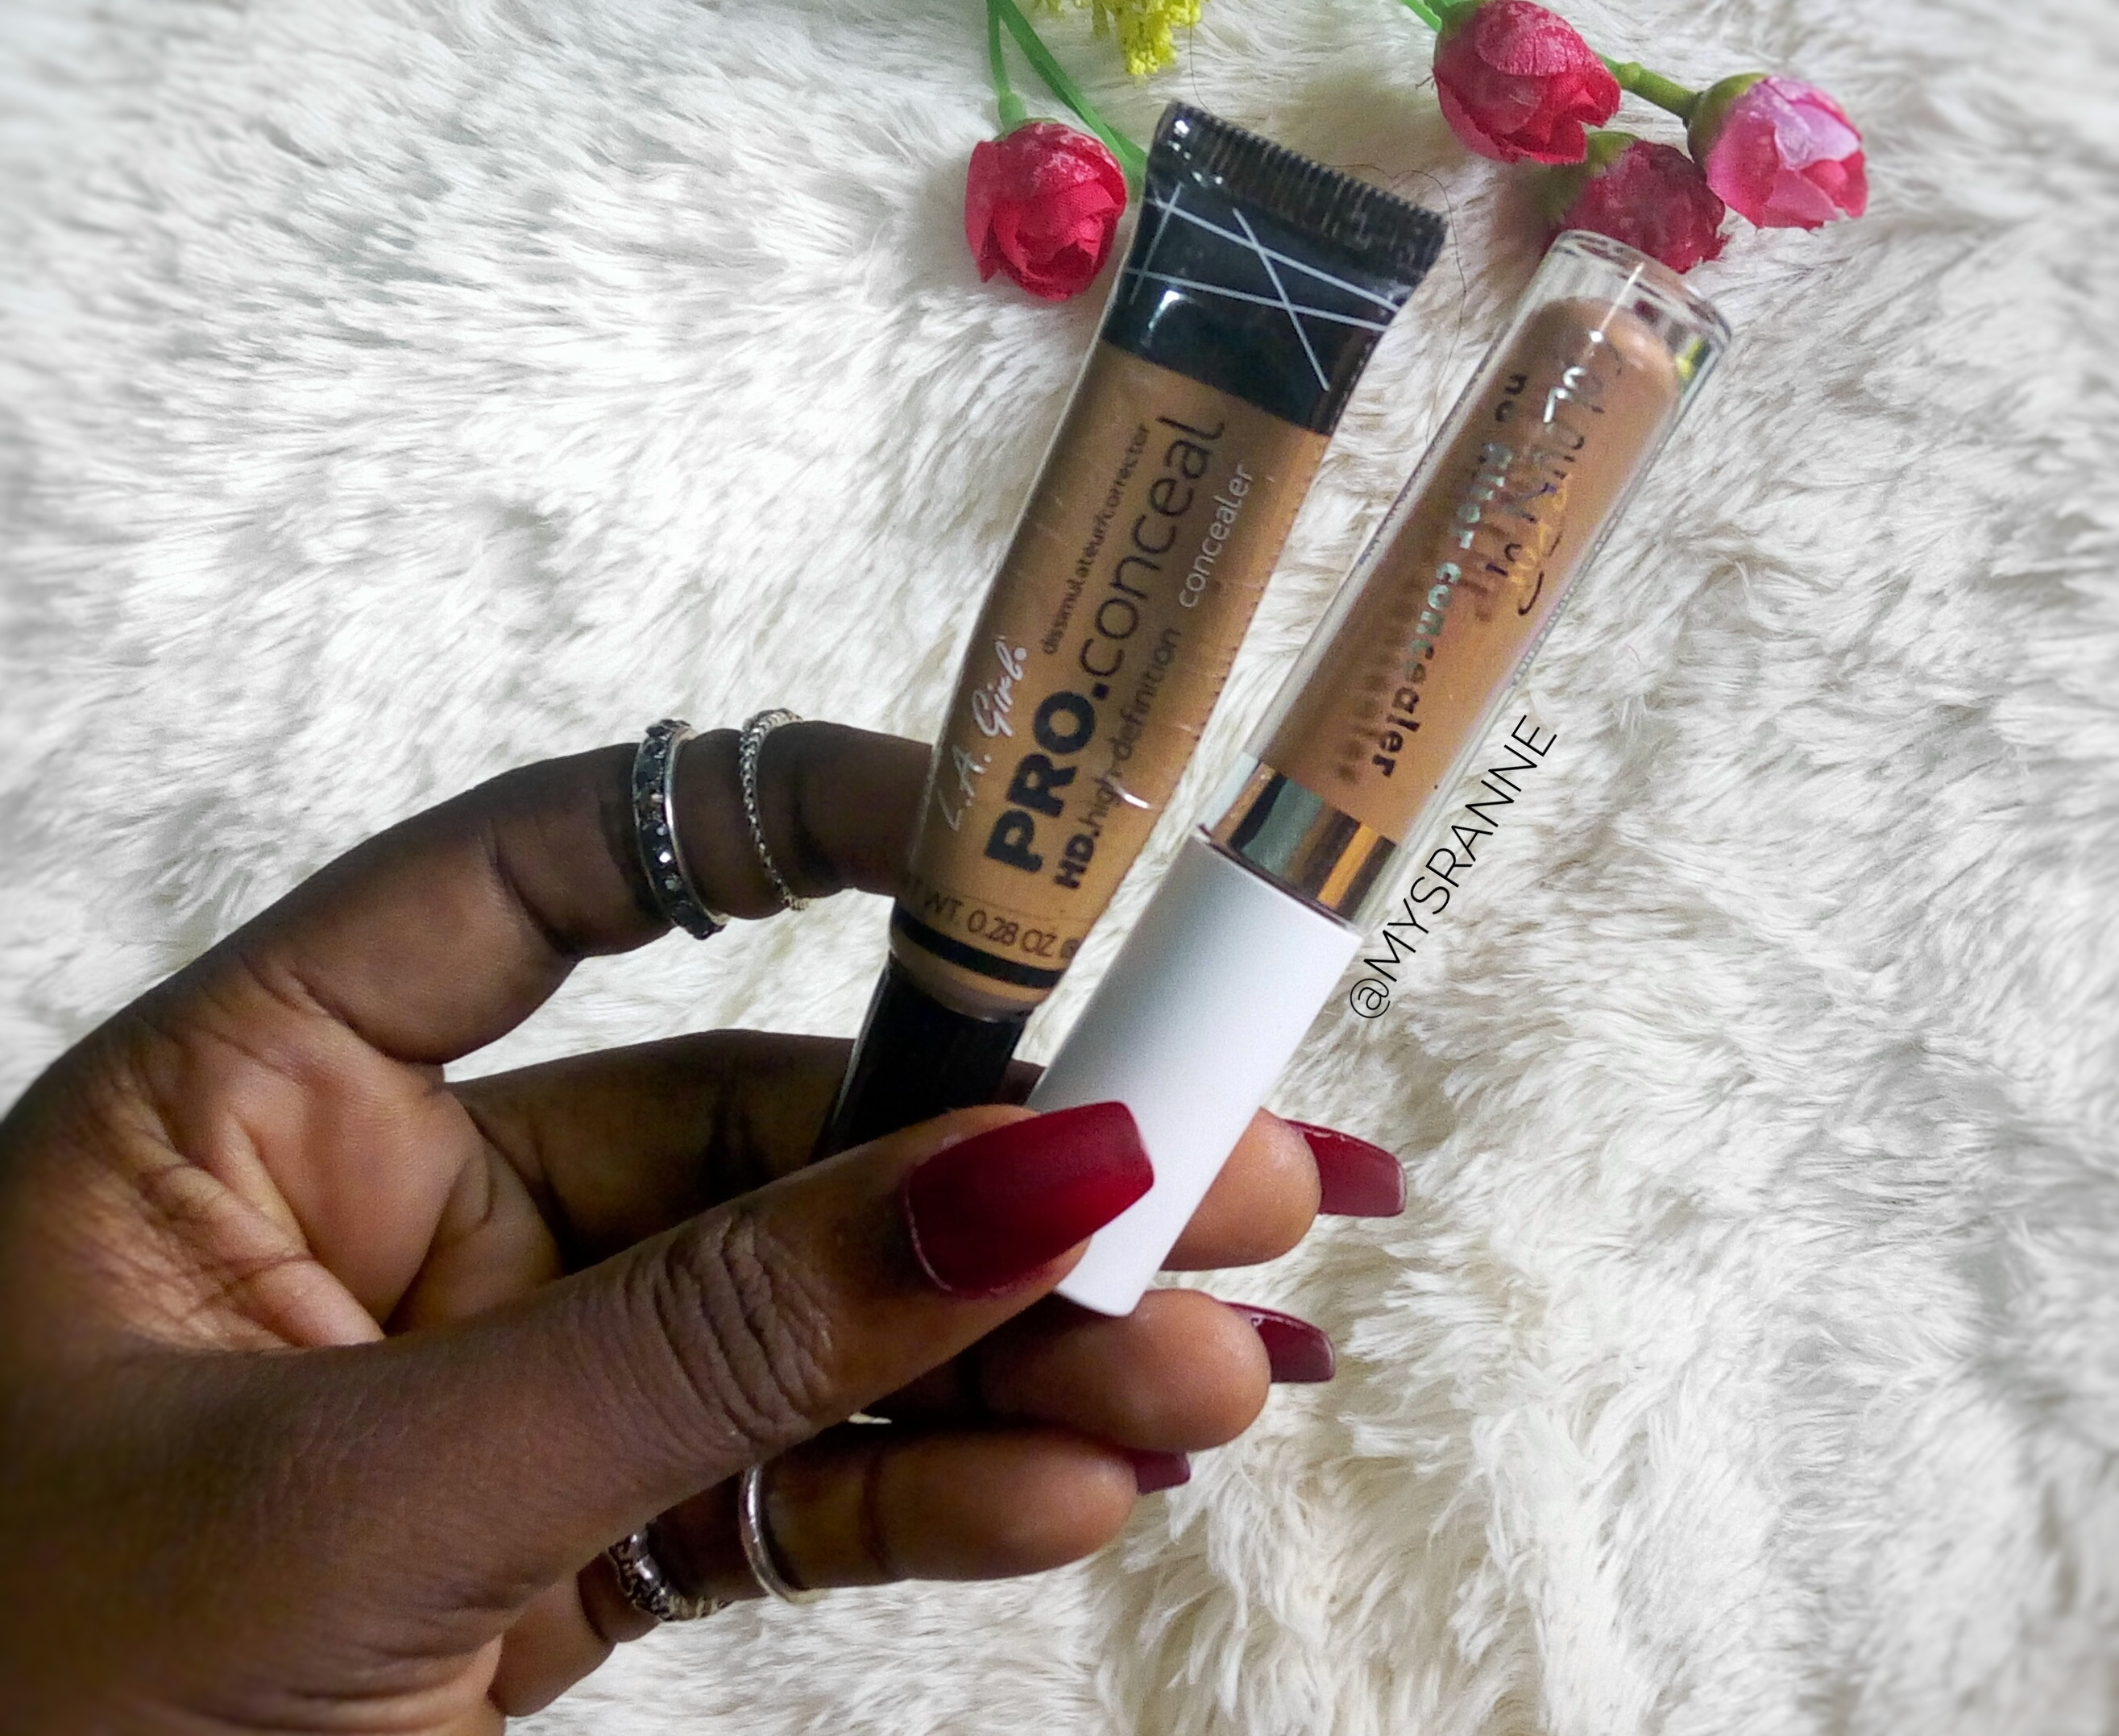 CONCEALERS: L.A GIRL PRO VS COLOURPOP NO FILTER